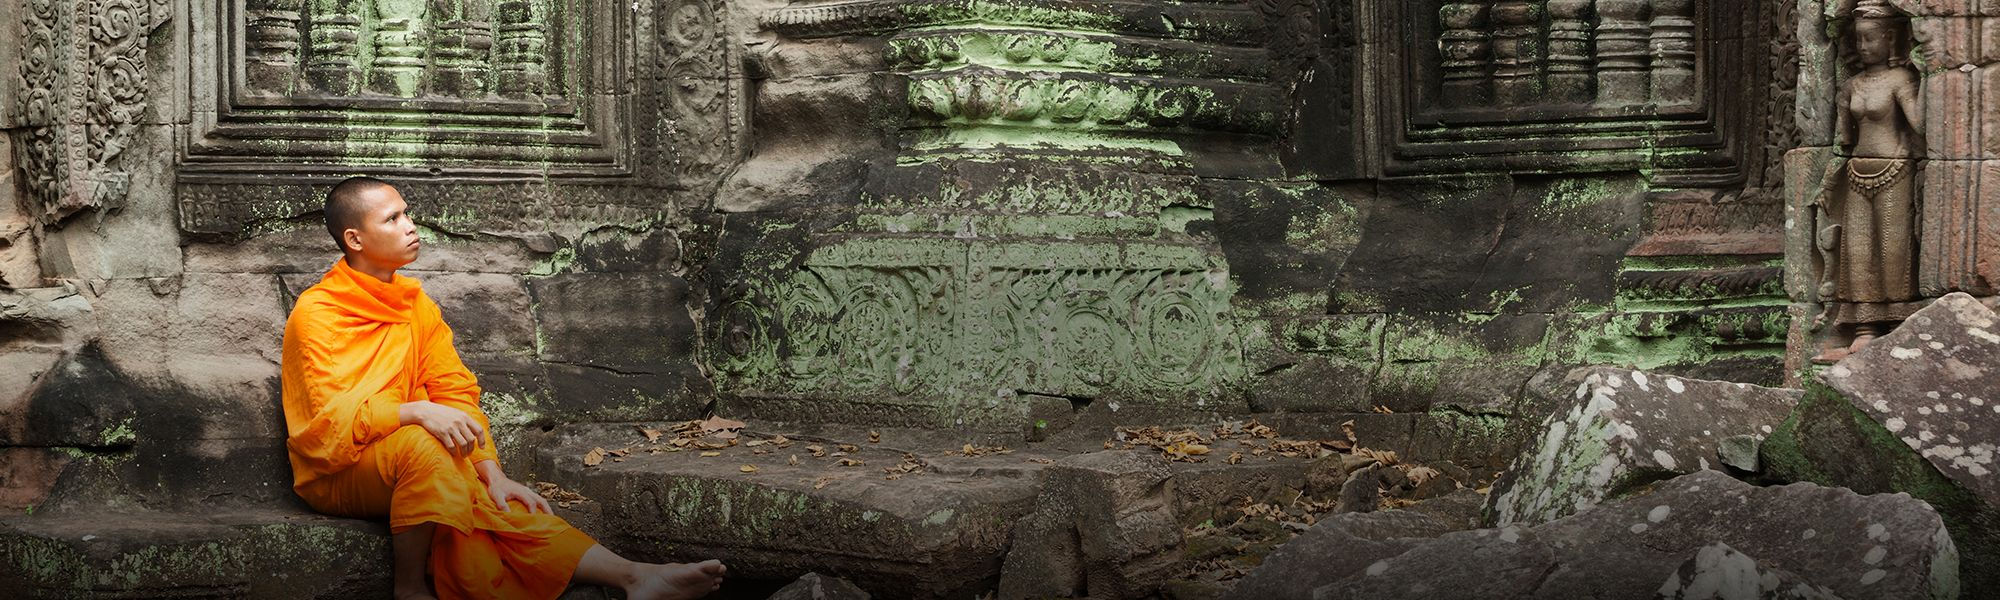 Rencontres Cambodge © Wander Luster / iStock